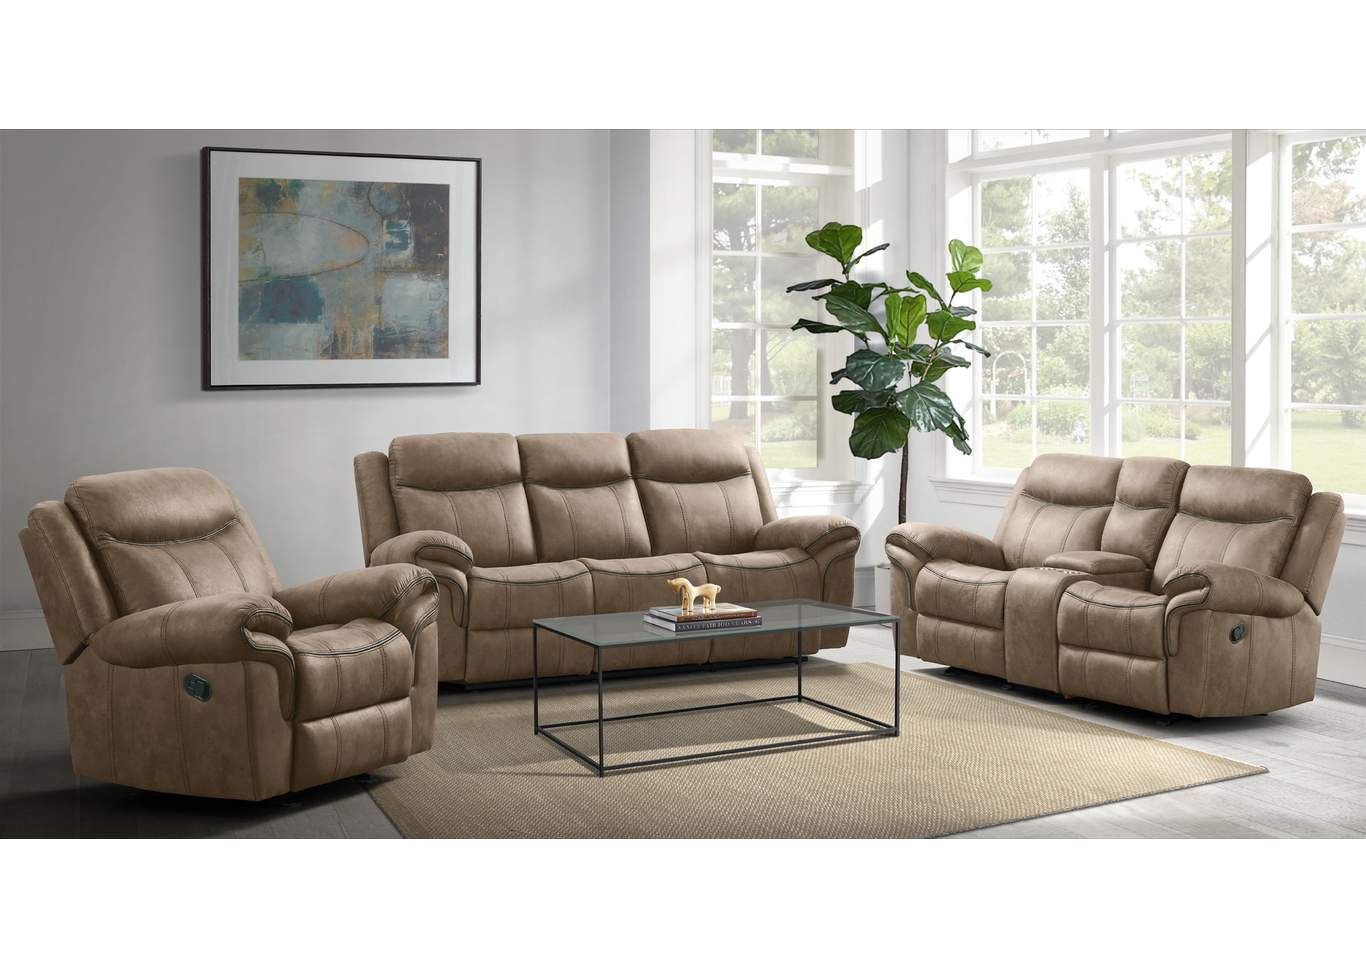 59928 Delgado Power Reclining Glider  Loveseat